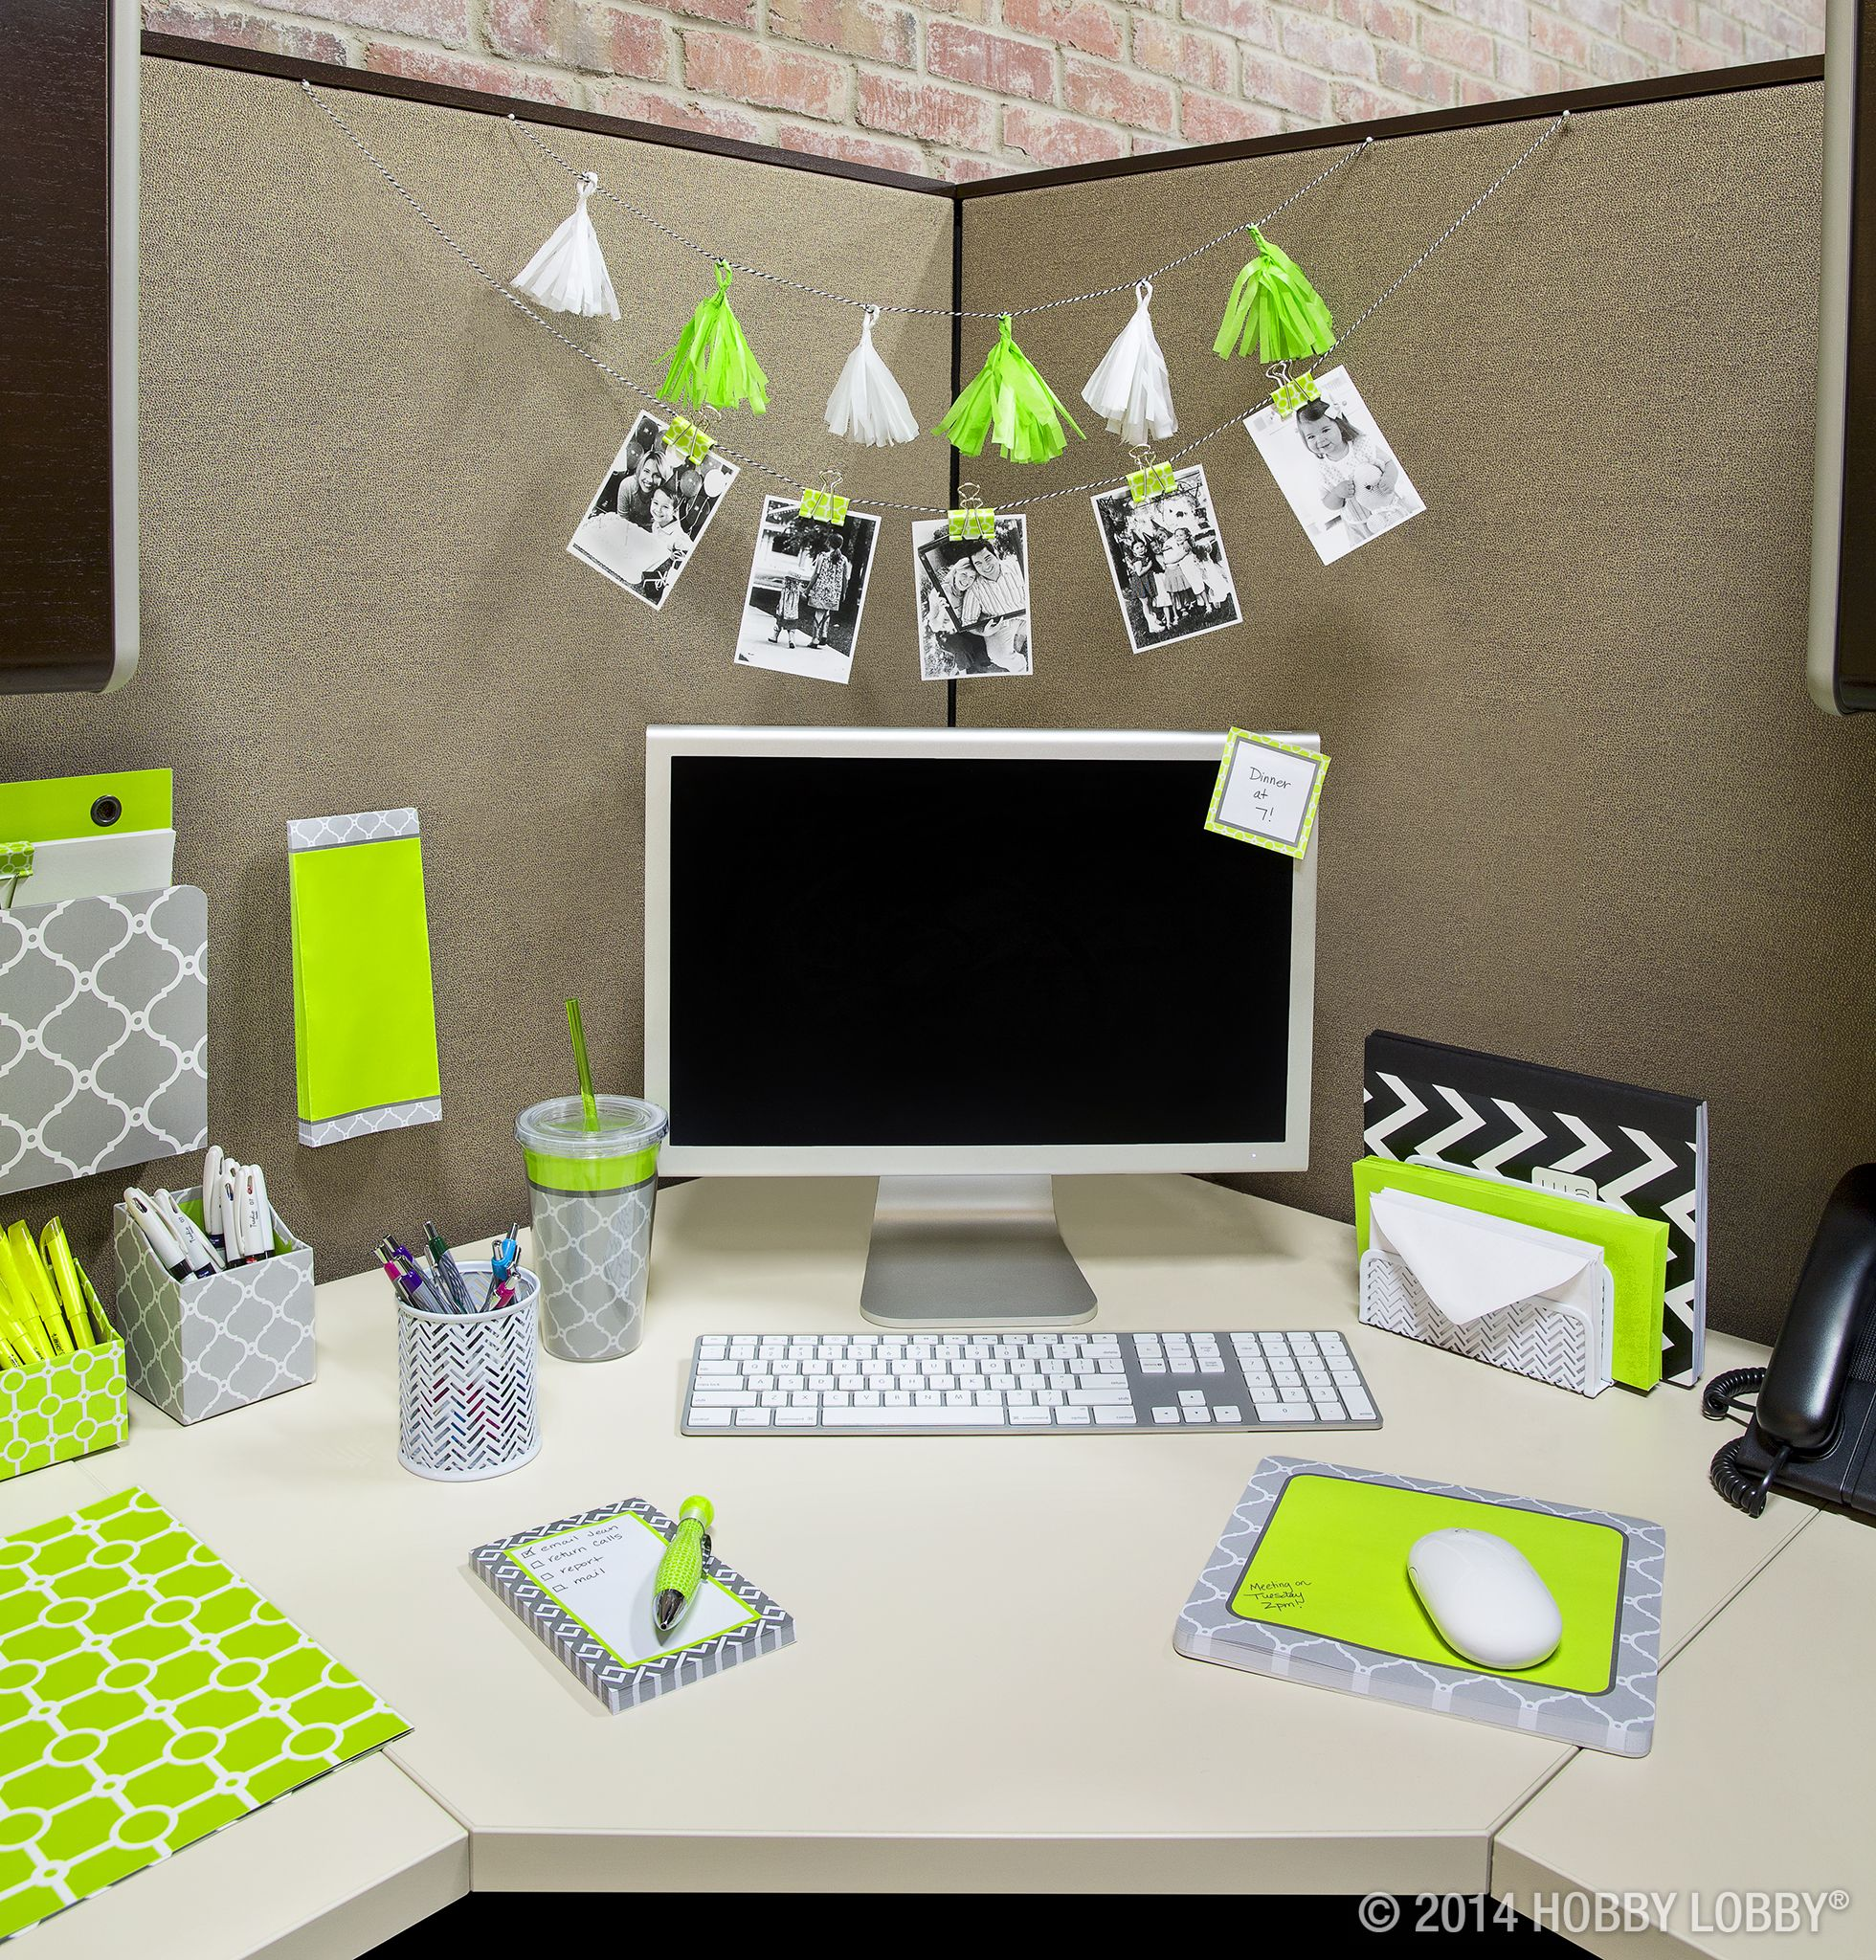 Brighten Up Your Cubicle With Stylish Office Accessories